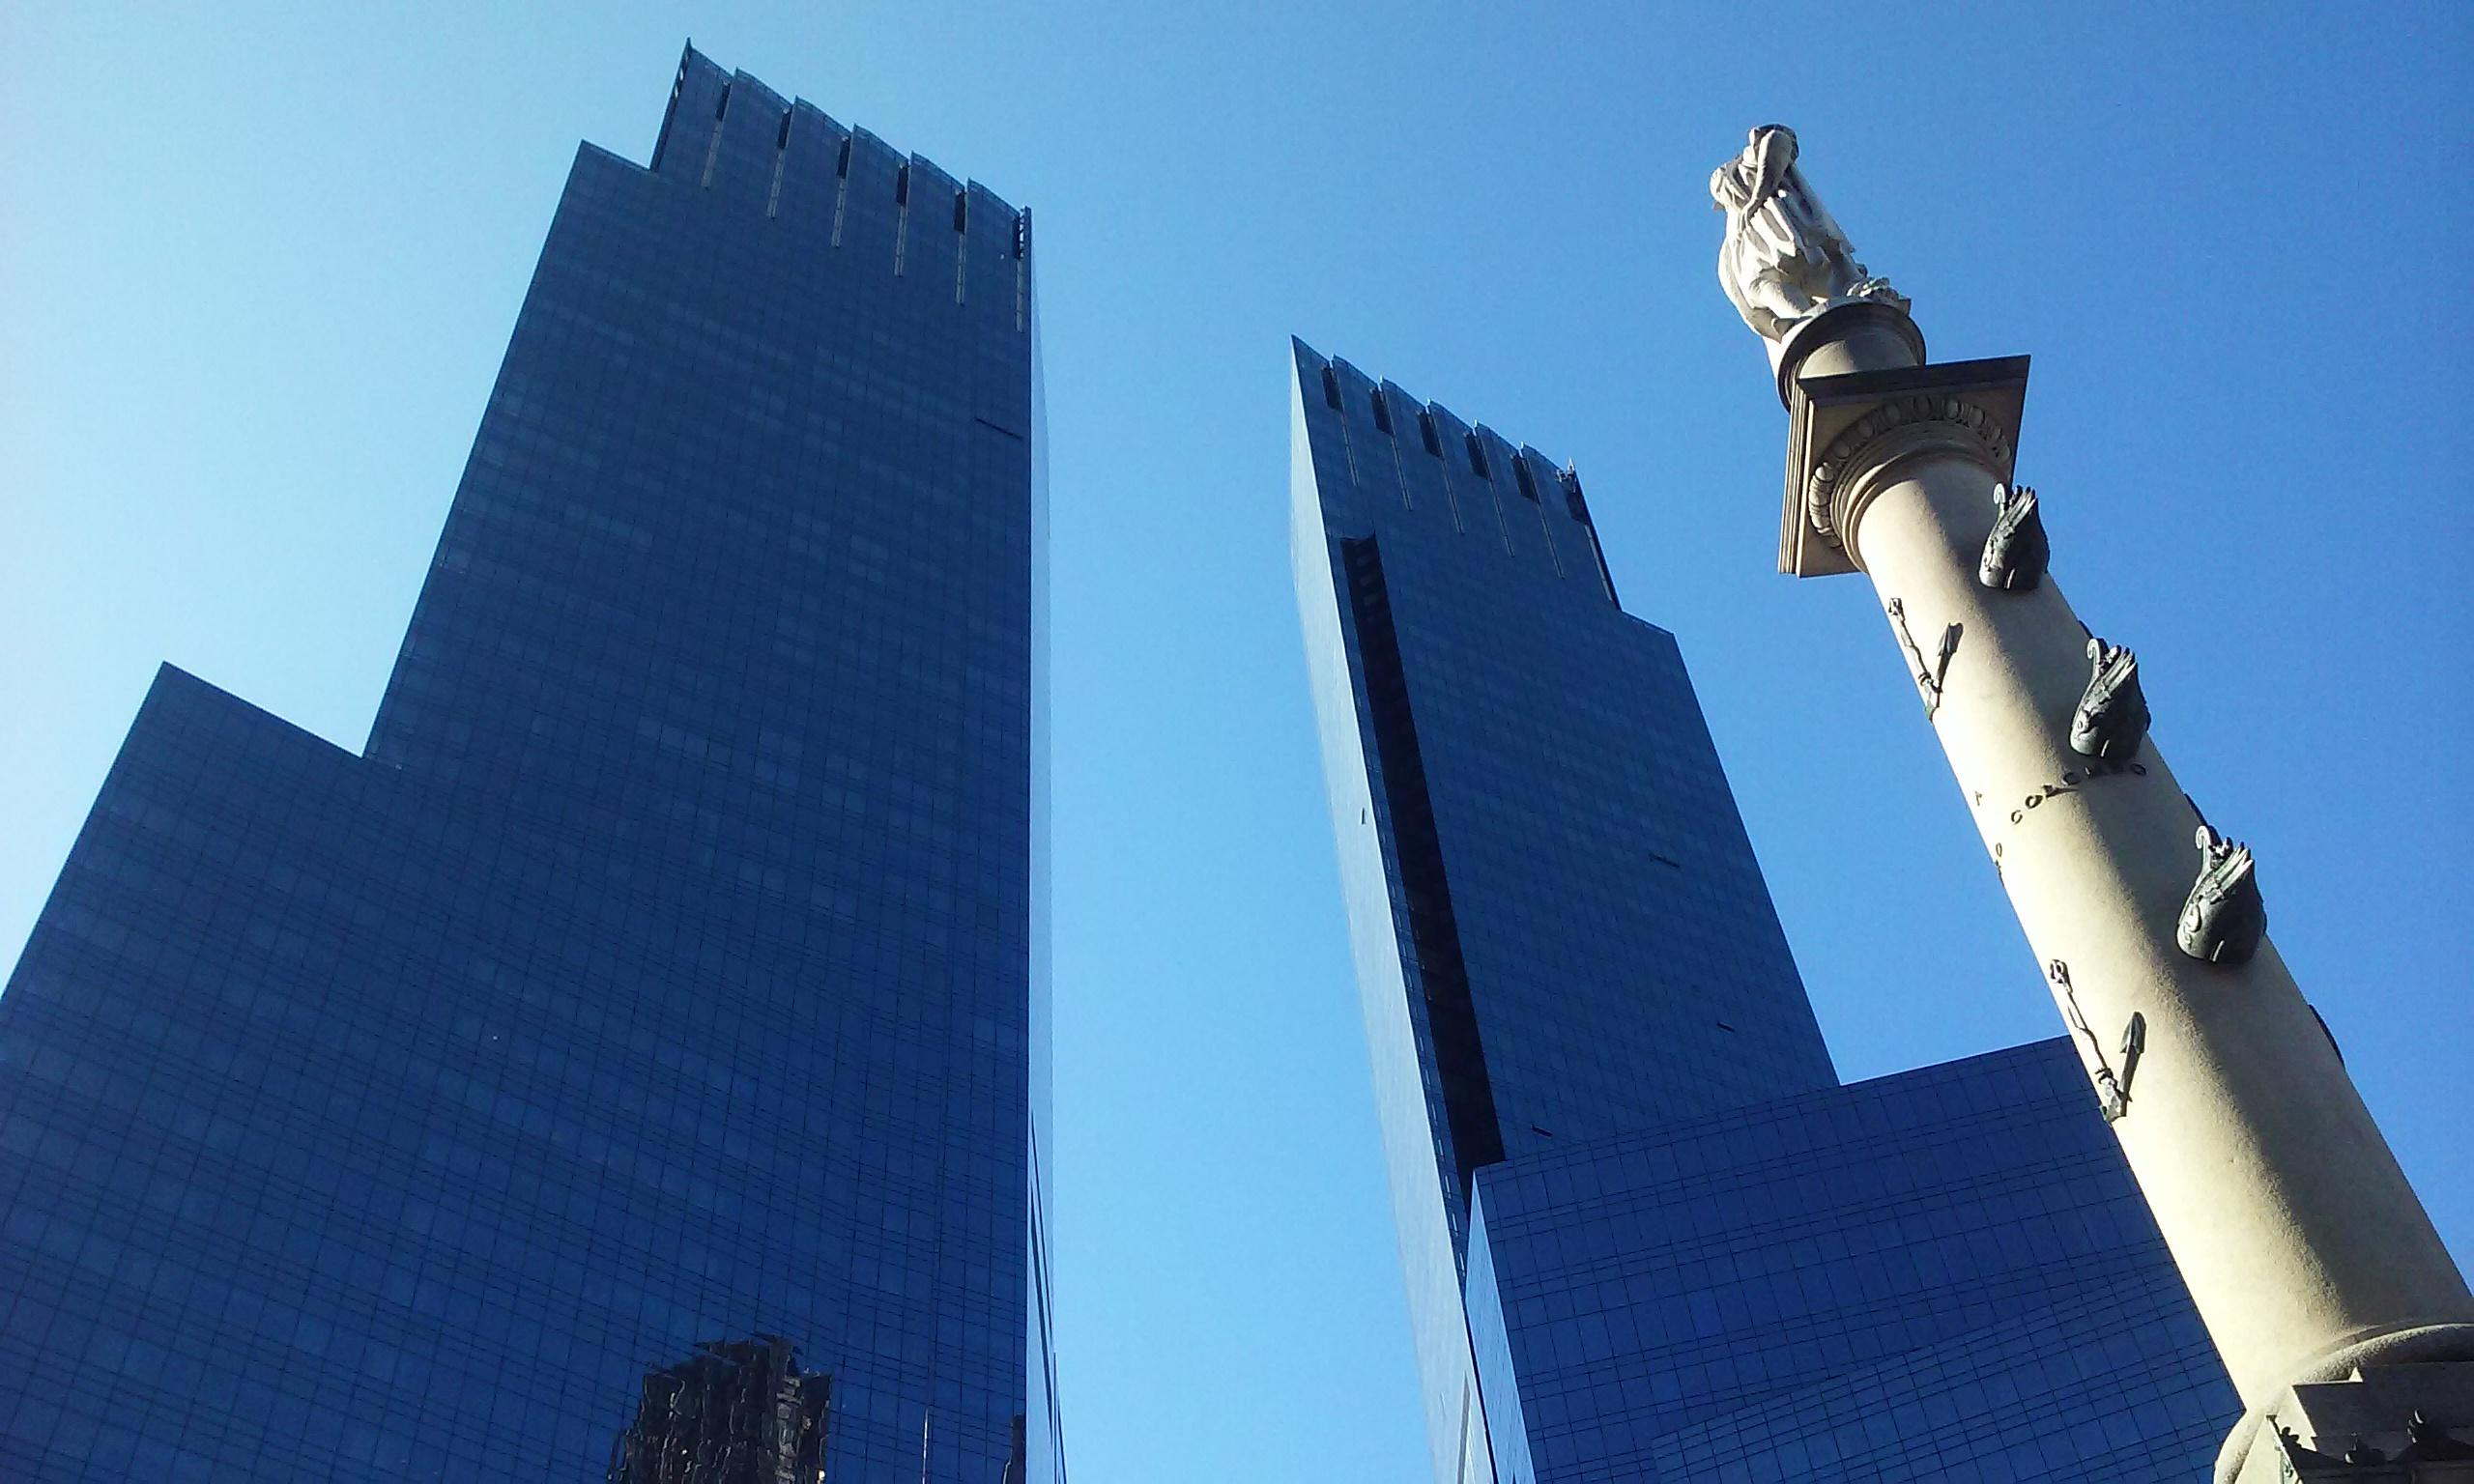 Columbus Circle and the Time Warner Building towers